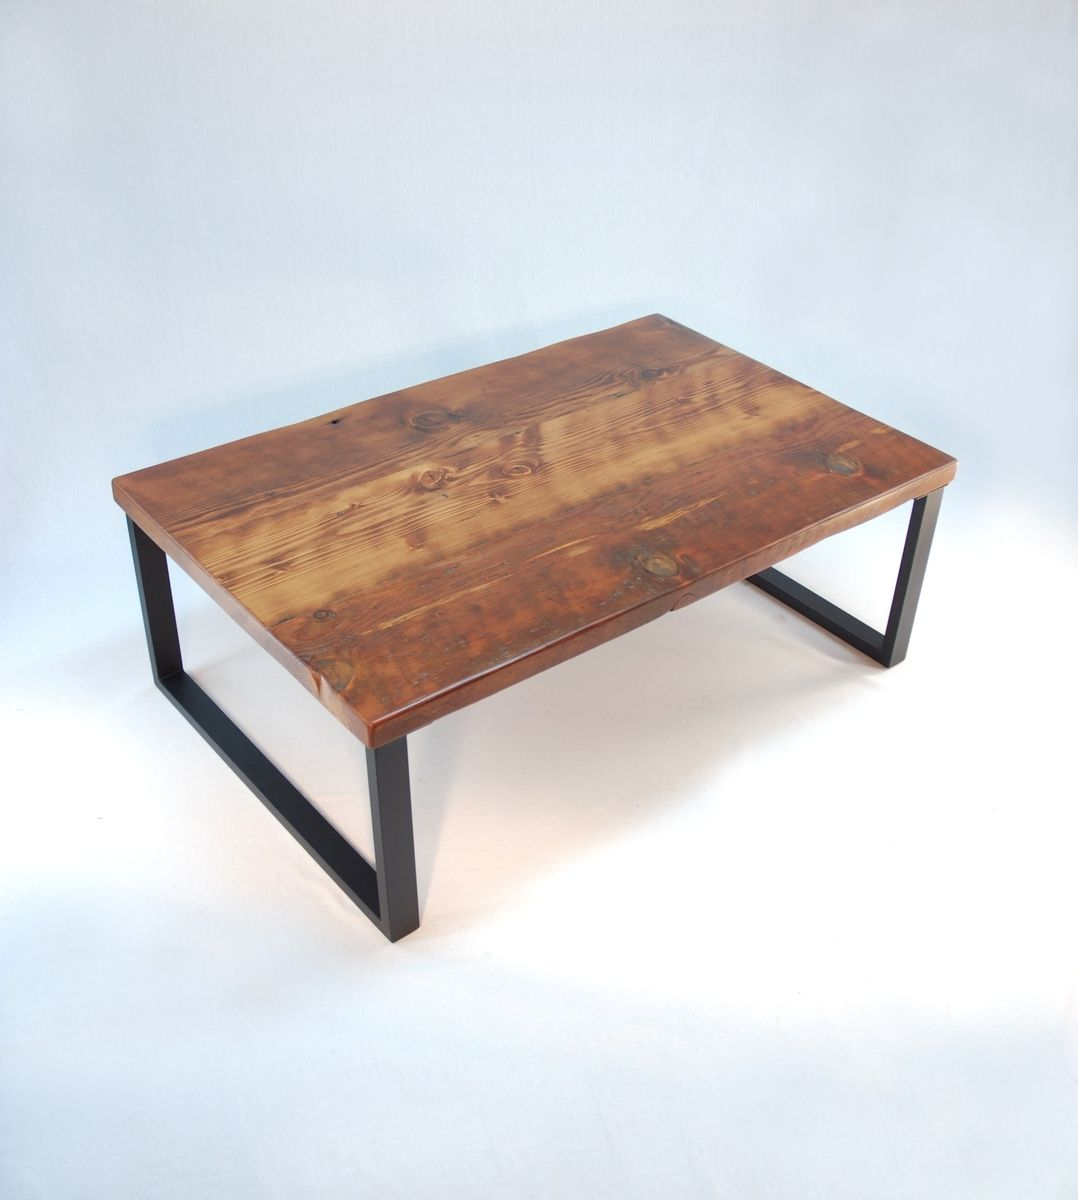 Handmade redmond rustic modern coffee table by jonathan for Modern coffee table